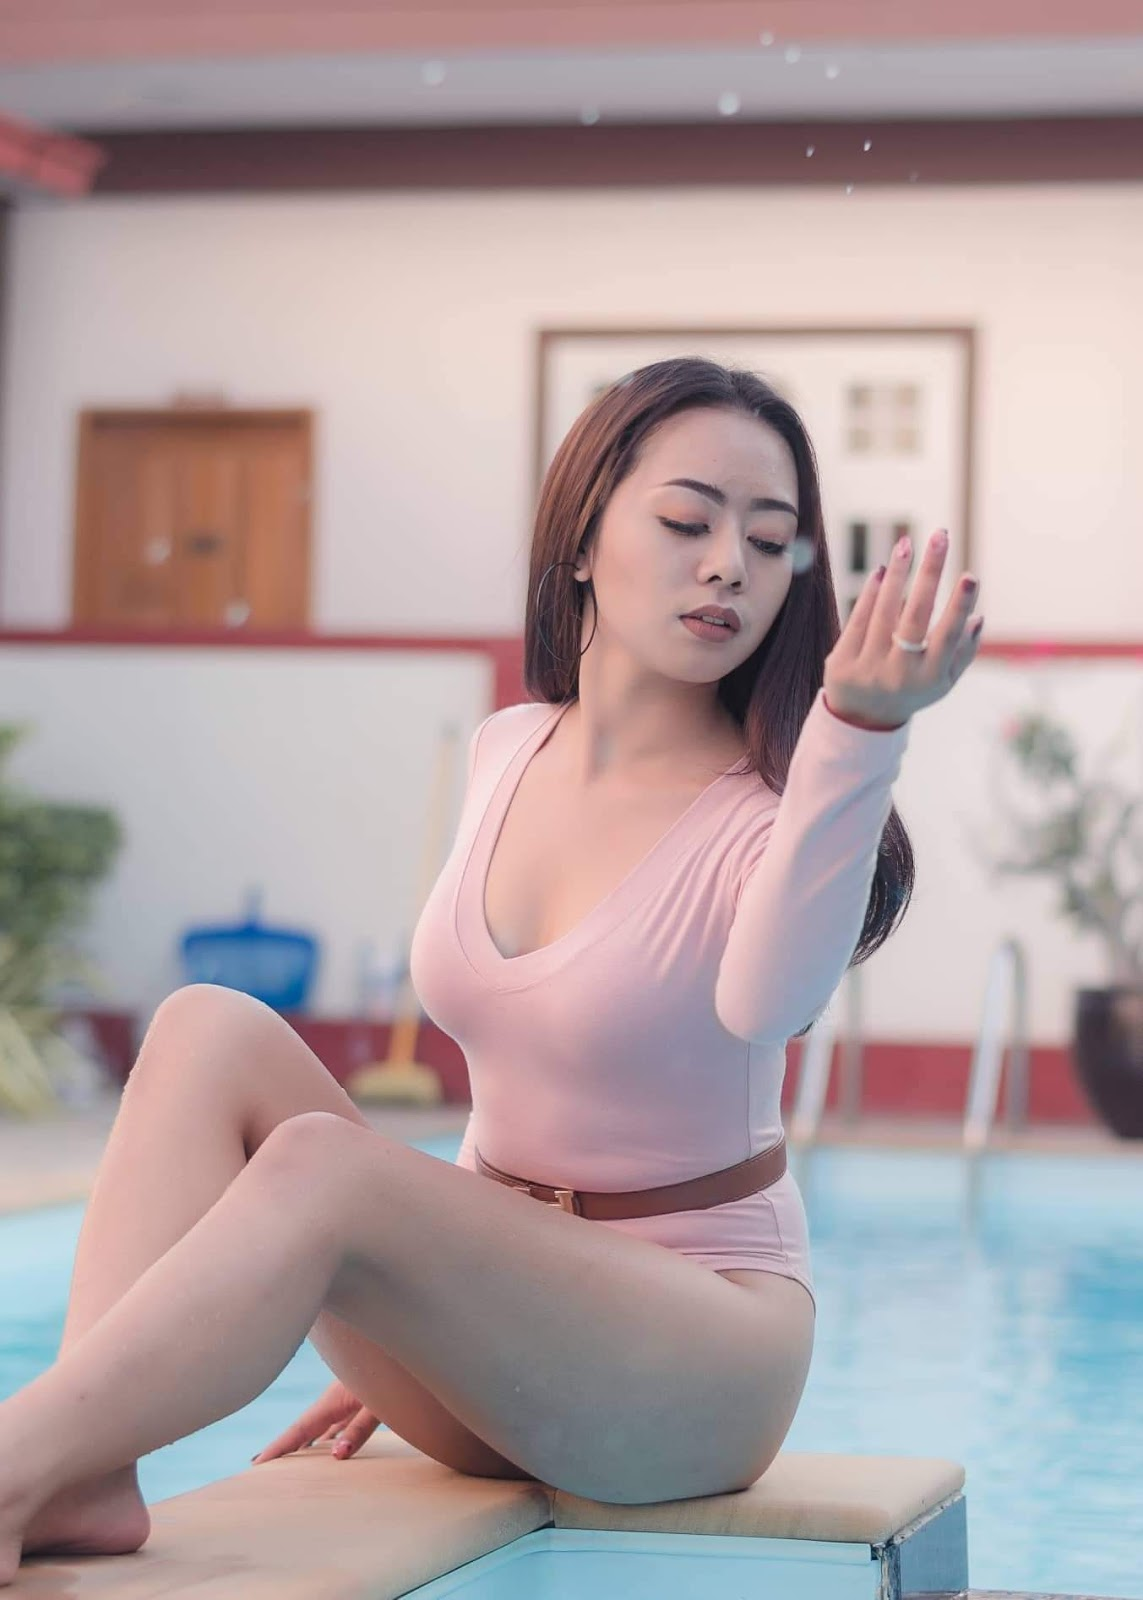 Myanmar Model Yin May Hnin - Swimming Pool Photoshoot